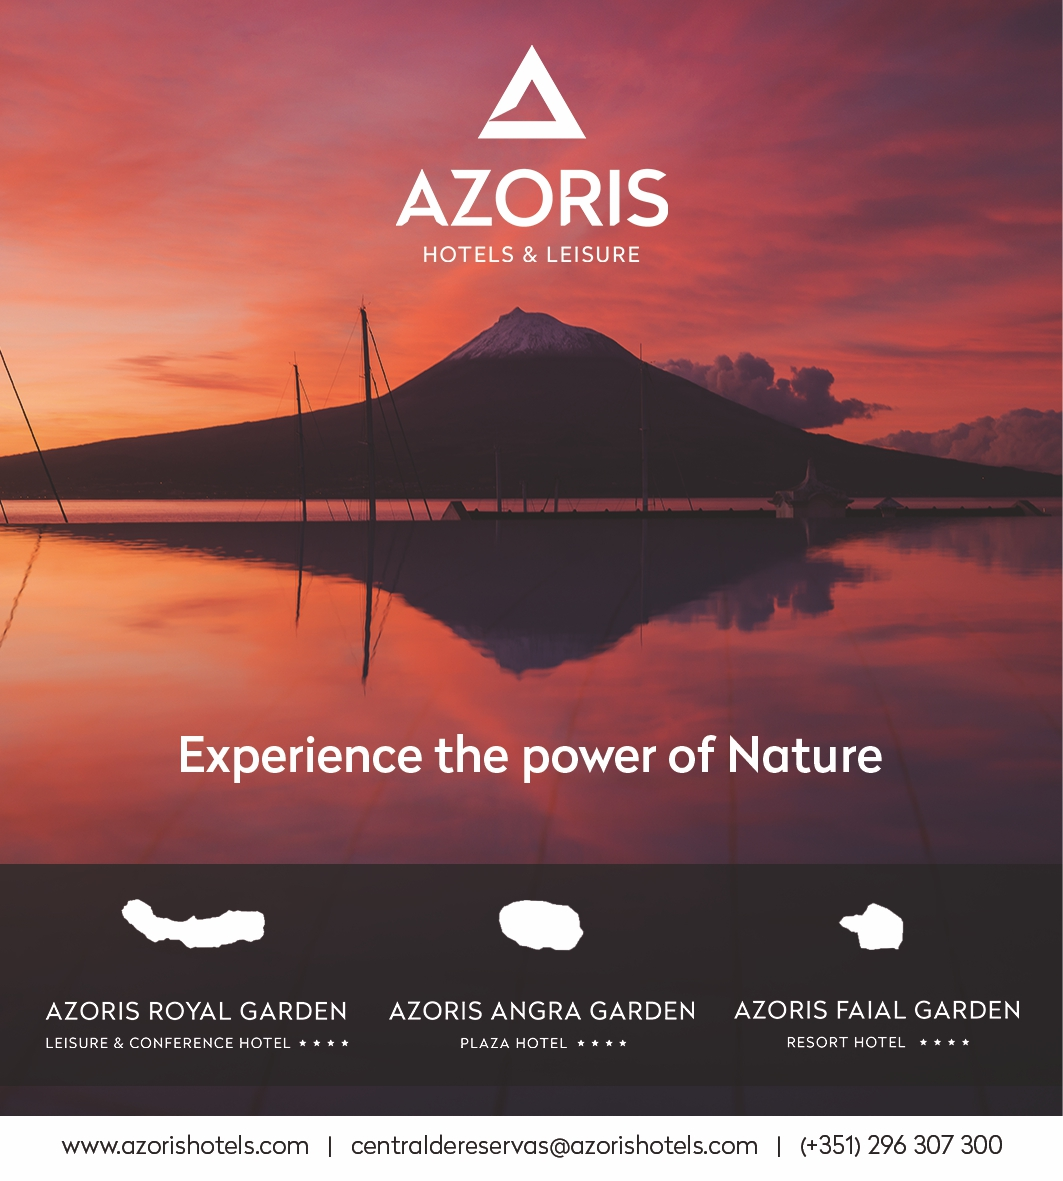 Azoris Hotels & Leisure